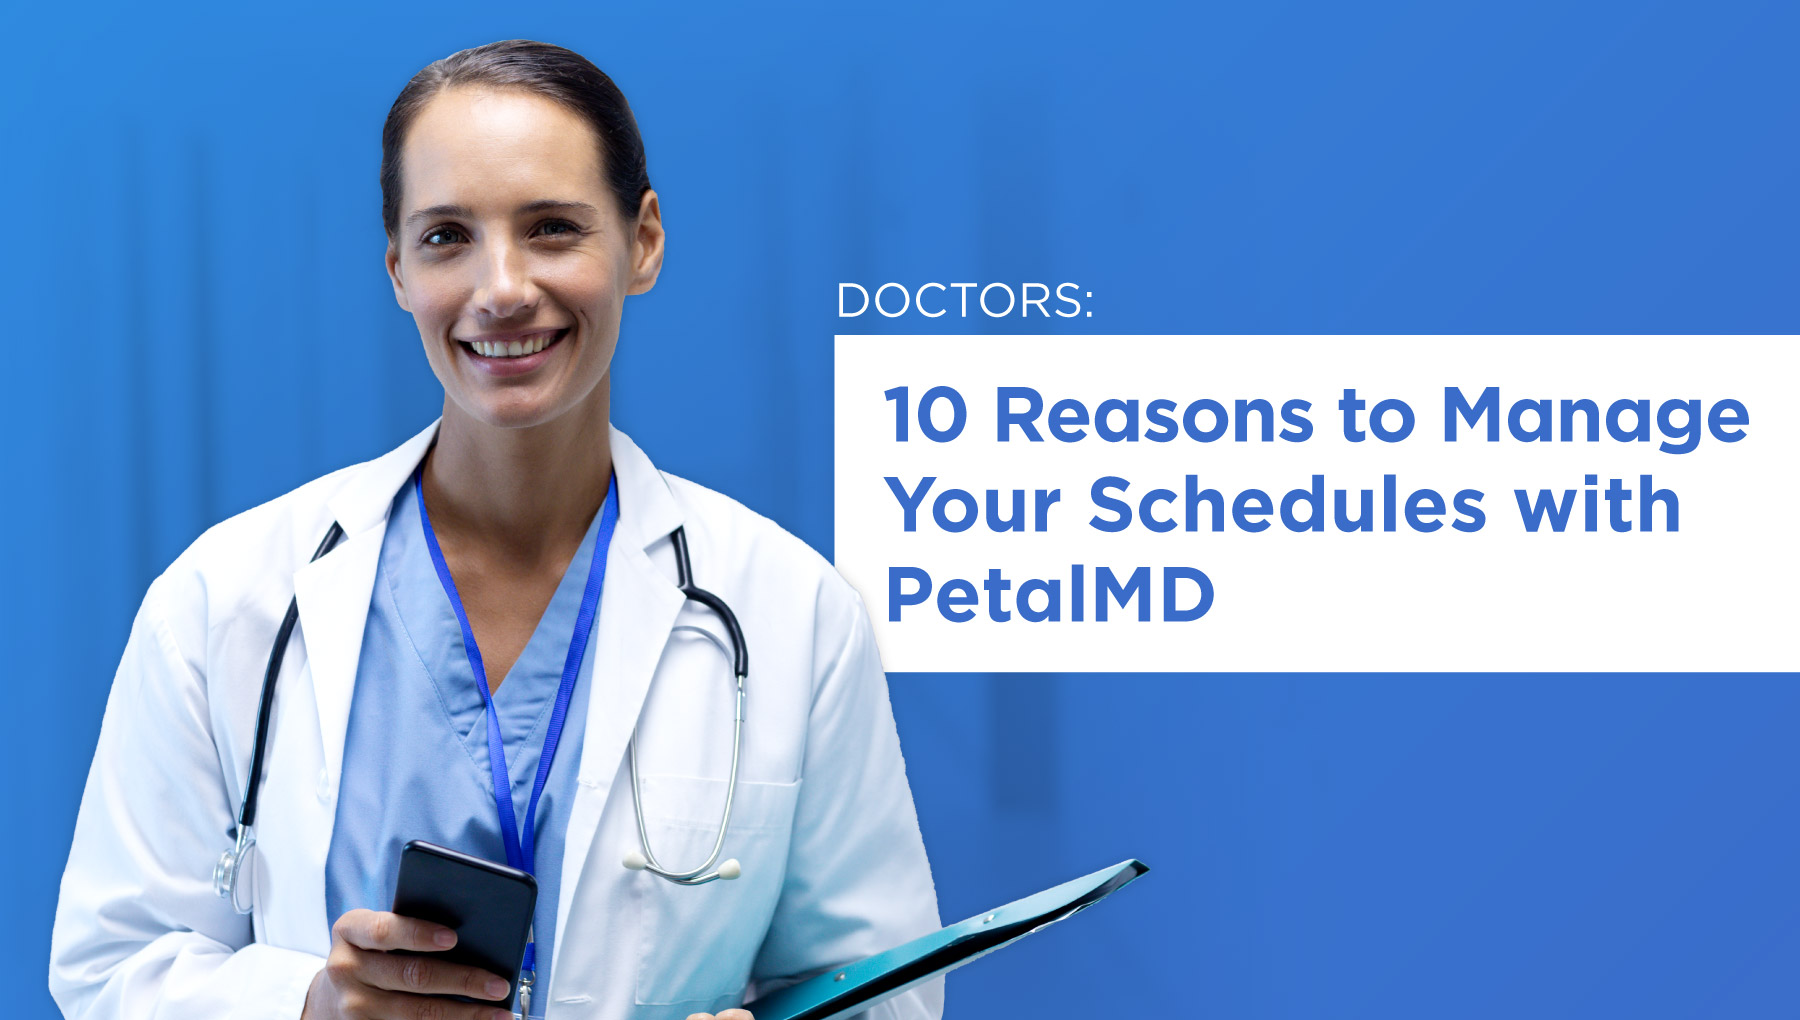 10 Reasons to Manage Your Schedules with PetalMD